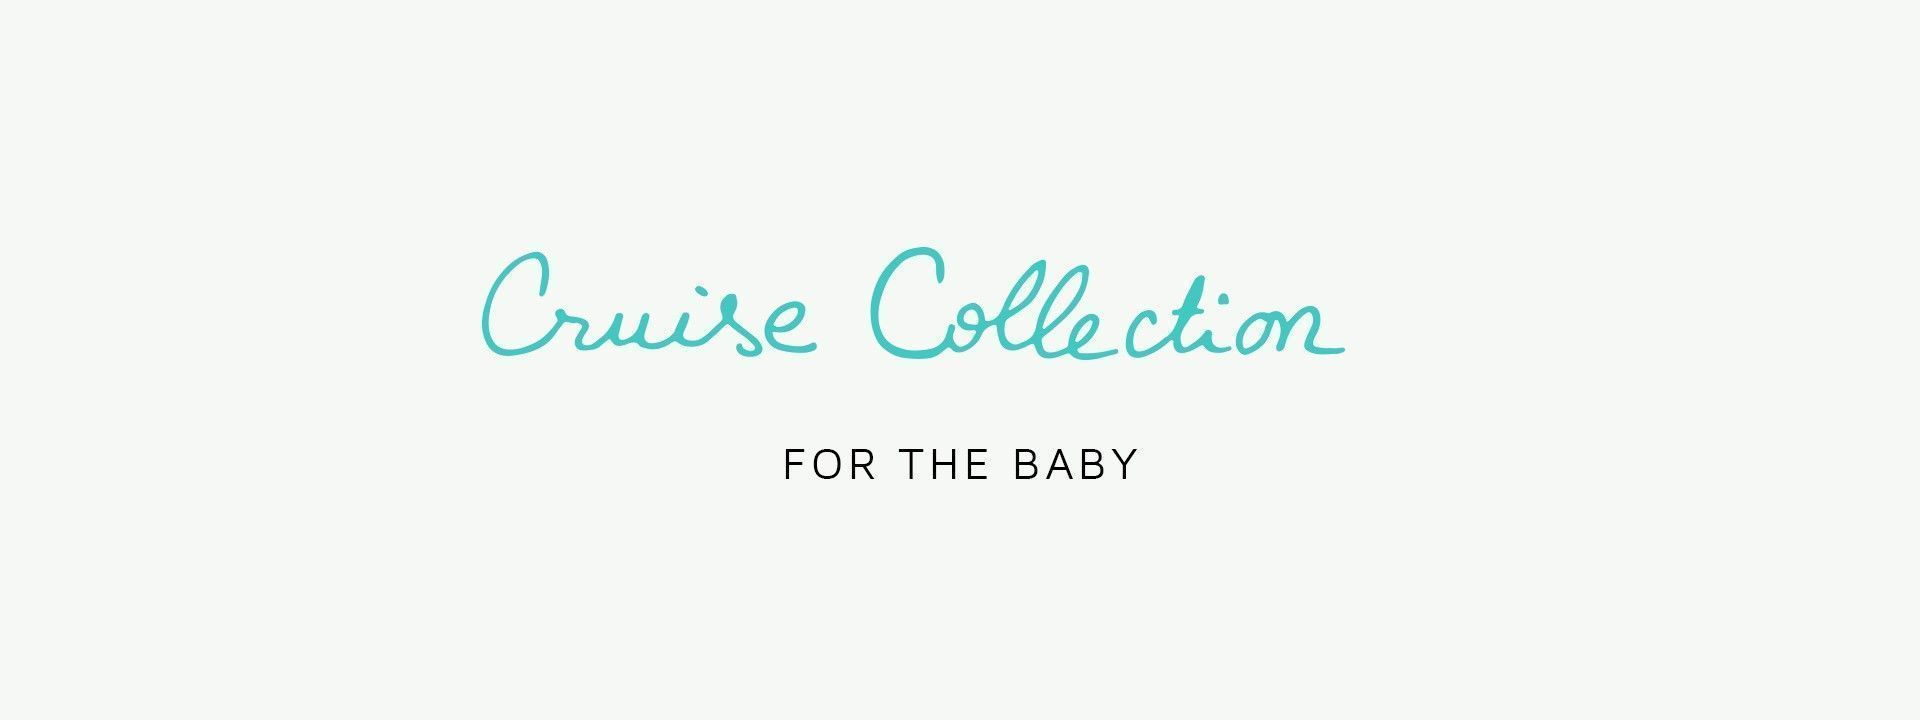 Cruise collection baby Bonpoint